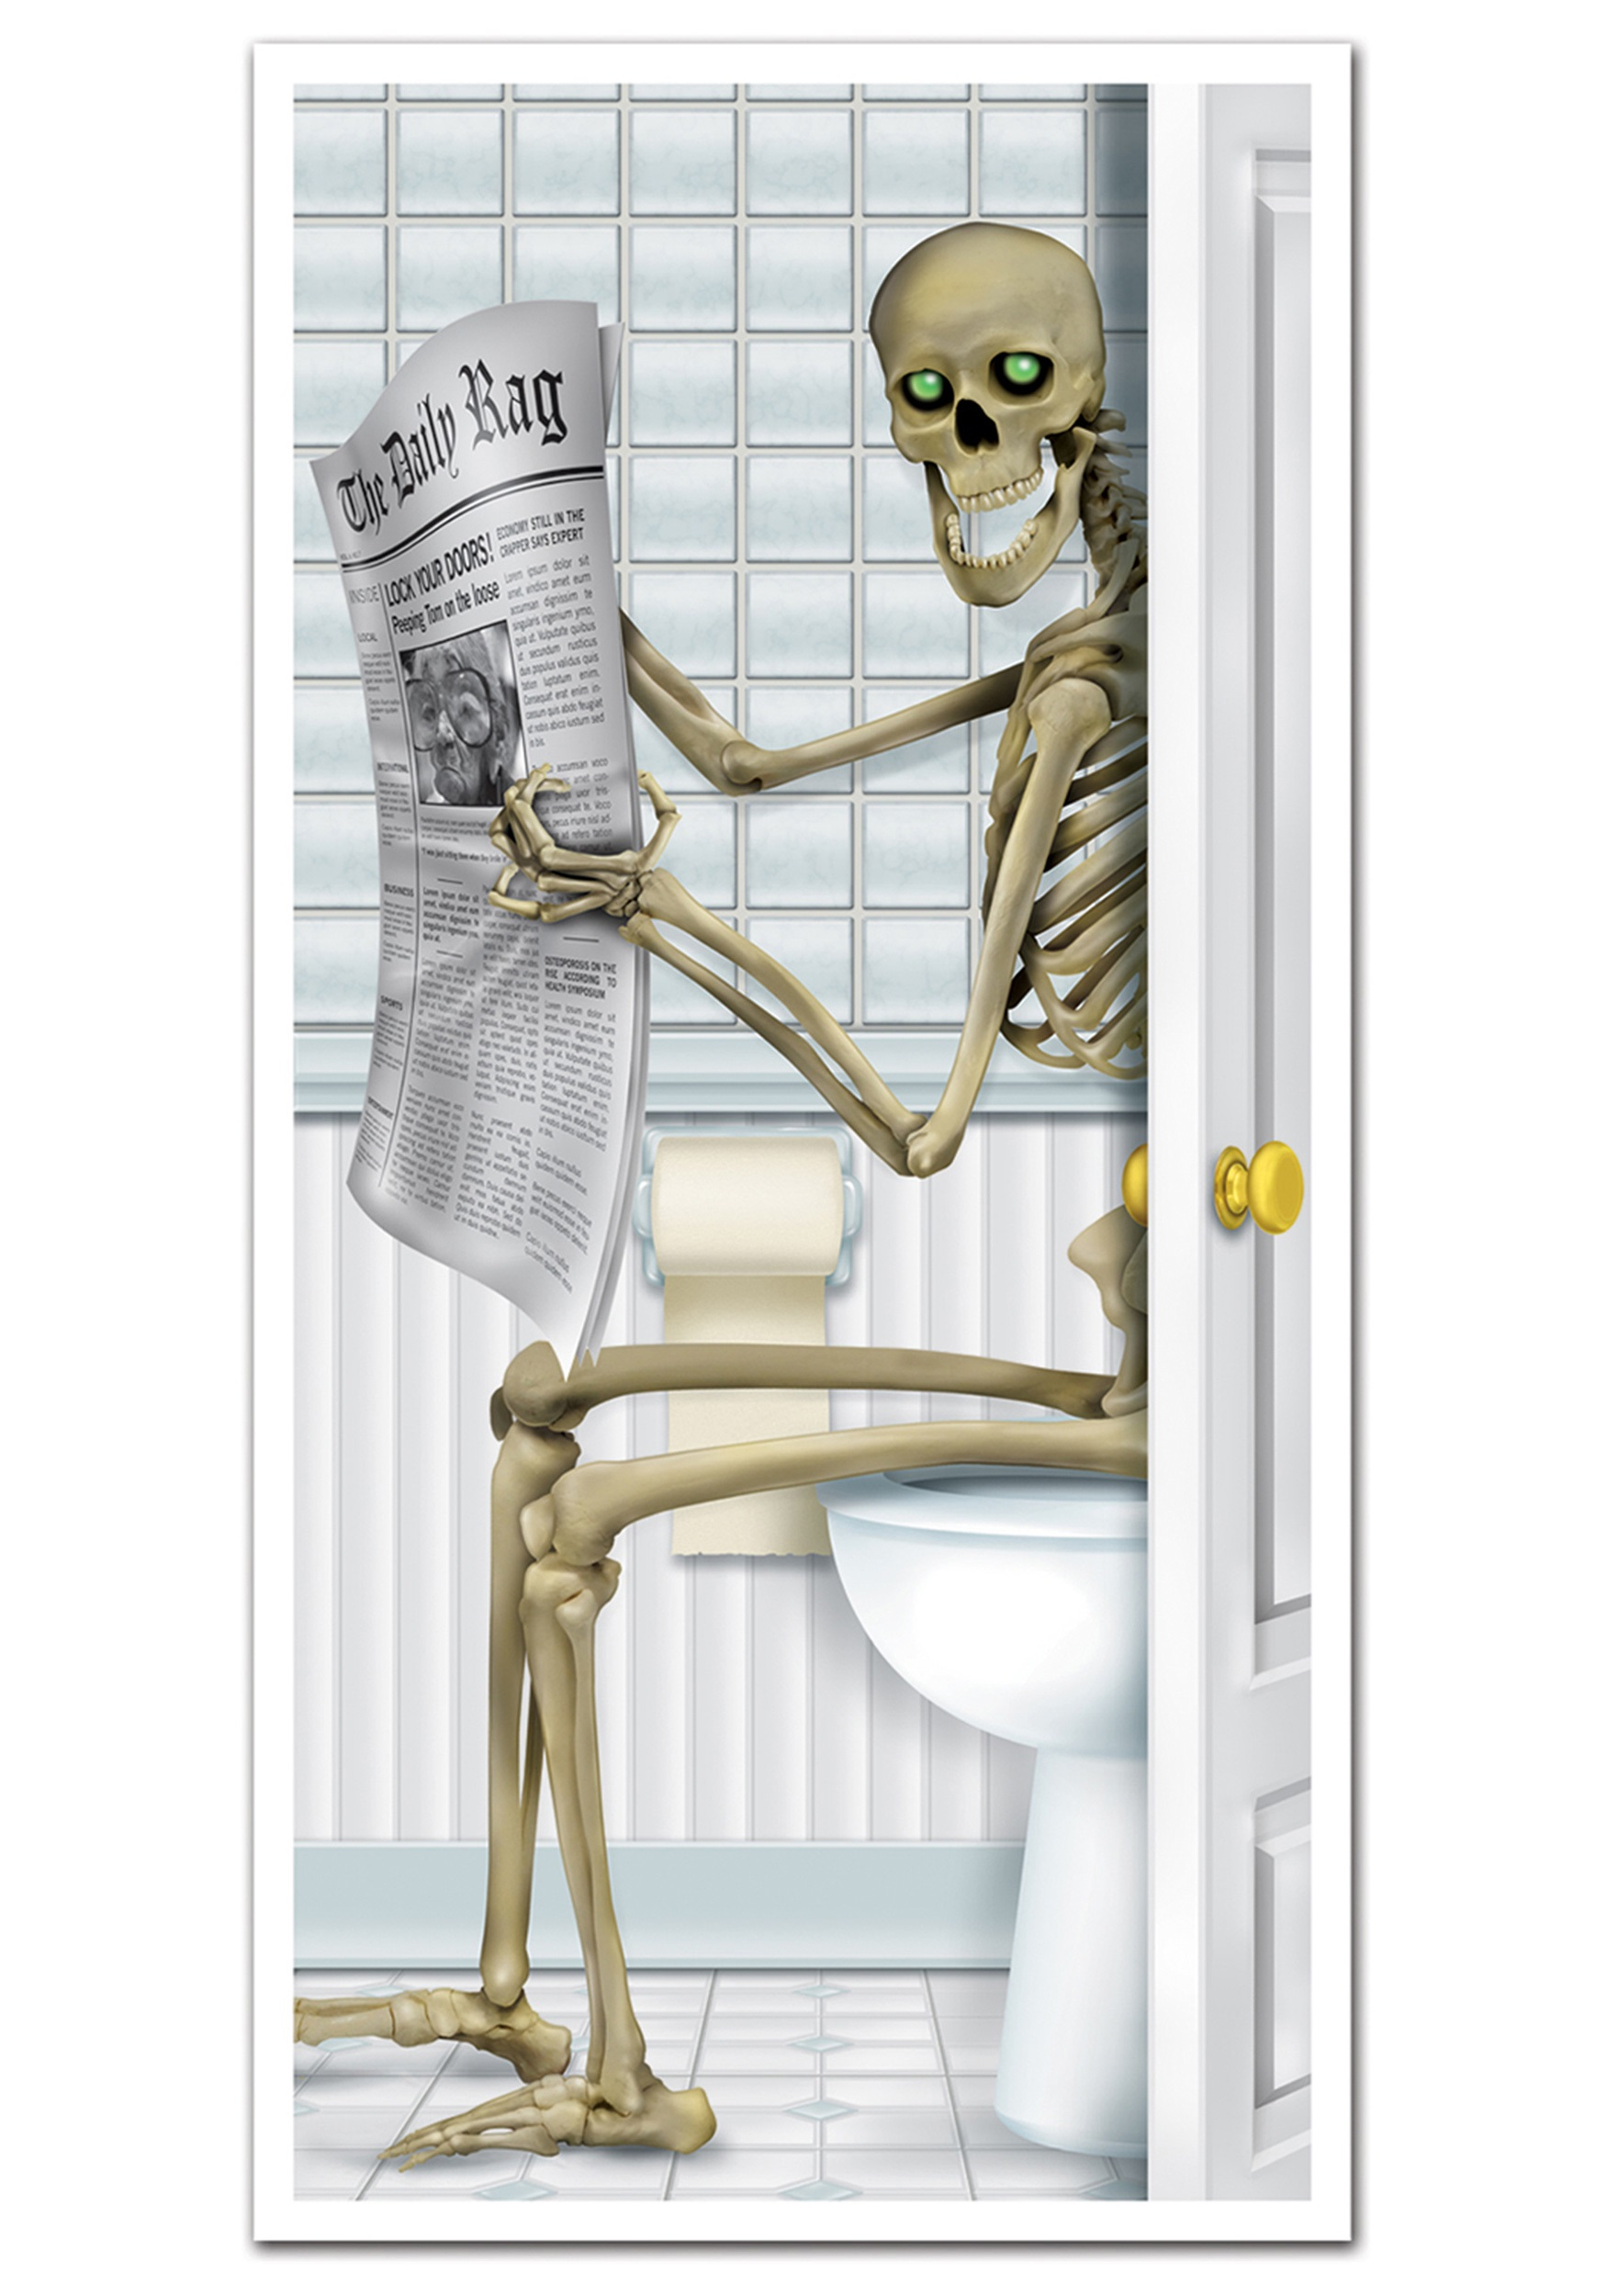 Pleasant Skeleton Restroom Door Cover Halloween Decoration Download Free Architecture Designs Intelgarnamadebymaigaardcom